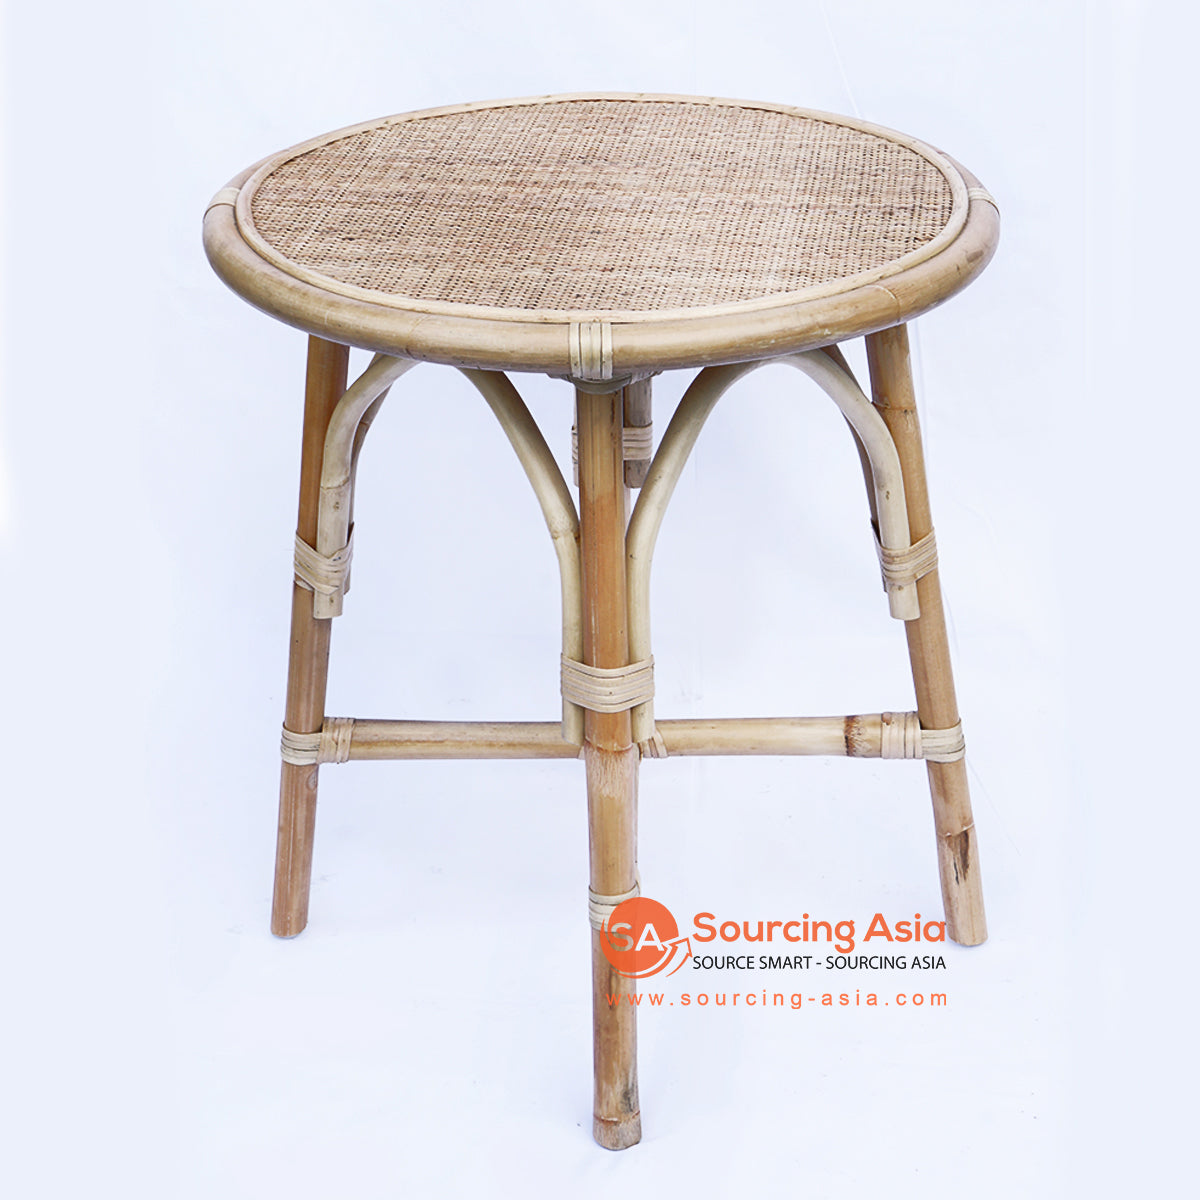 BNTC005-3 RATTAN SIDE TABLE